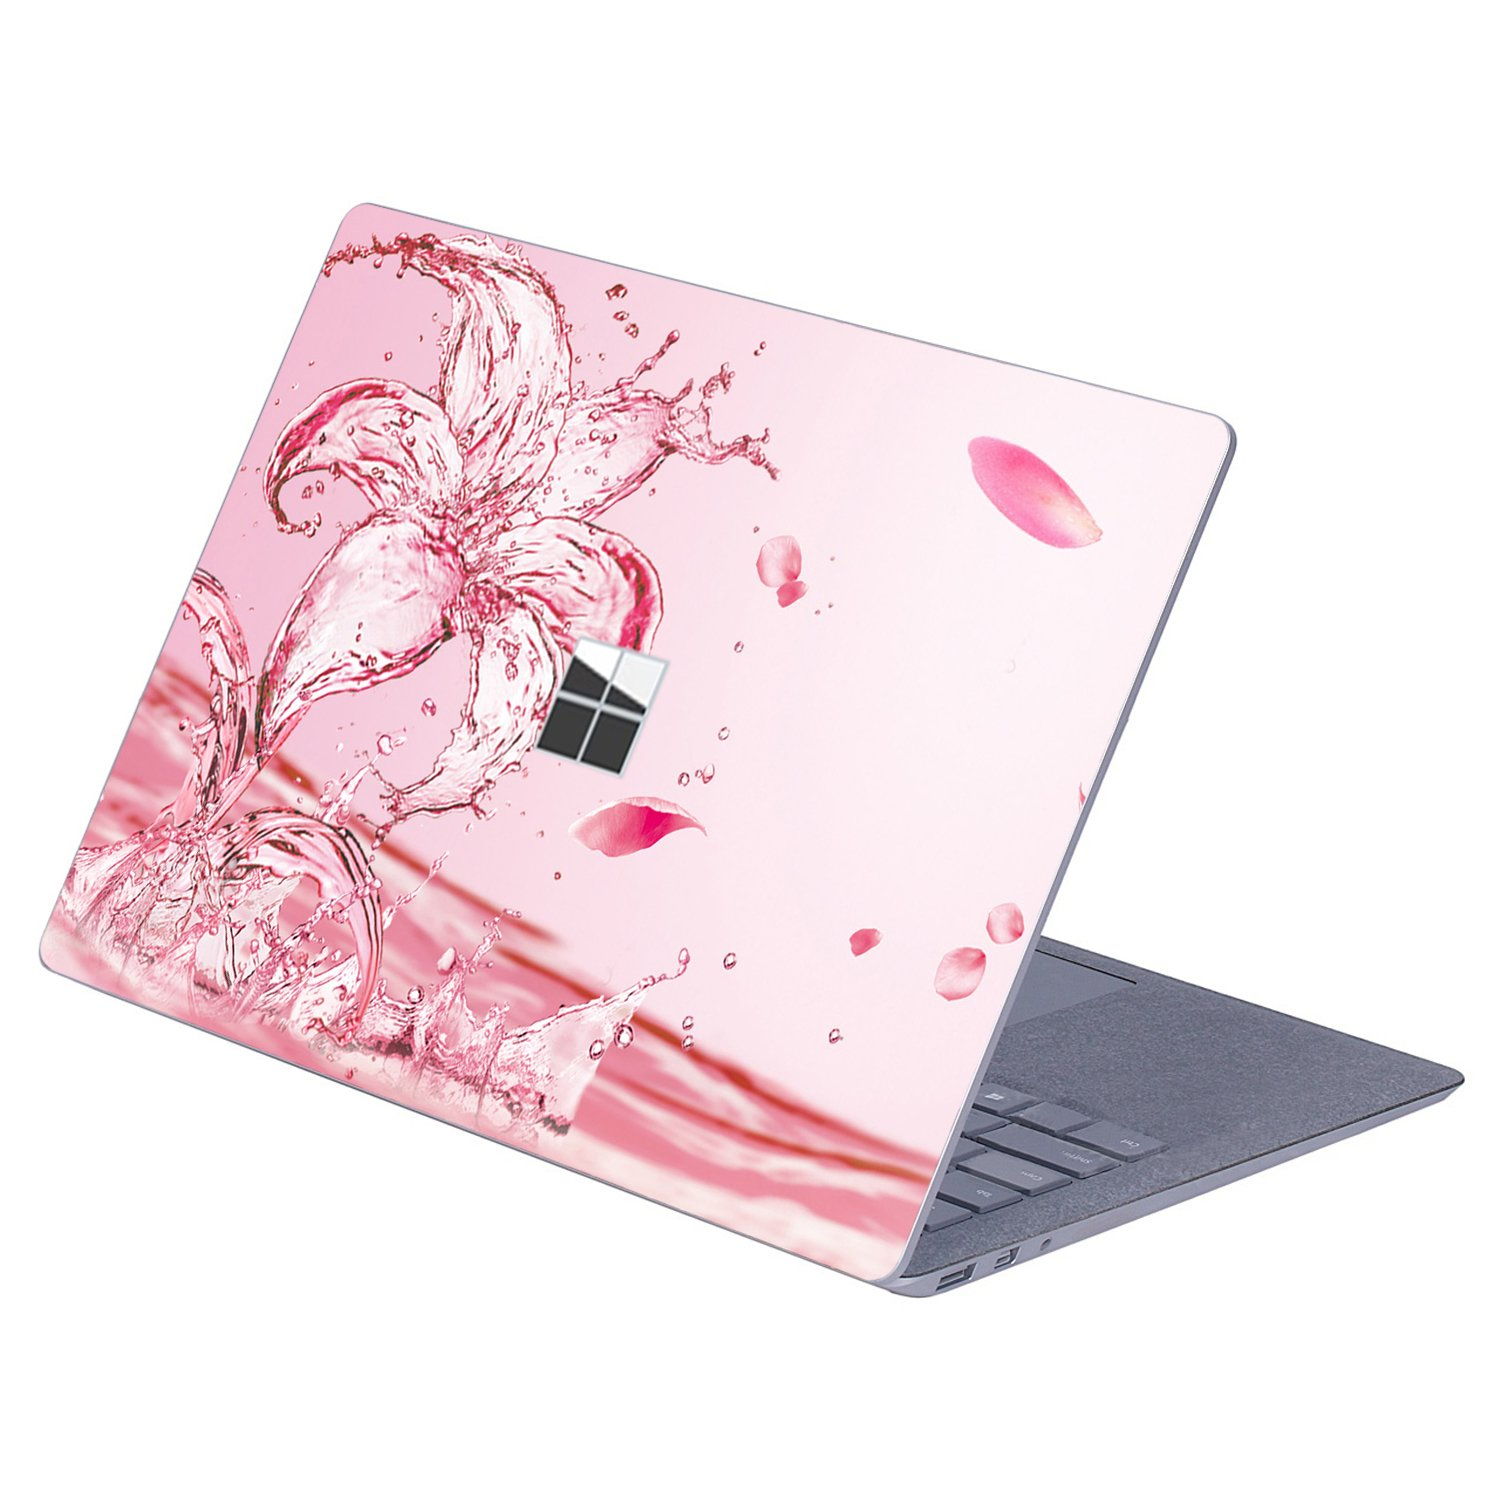 Masino Protective Decal Sticker Protector Cover Skin for 13.5 inch Microsoft Surface Laptop (For Microsoft Surface Laptop, Decal - Lily on Water Pink)